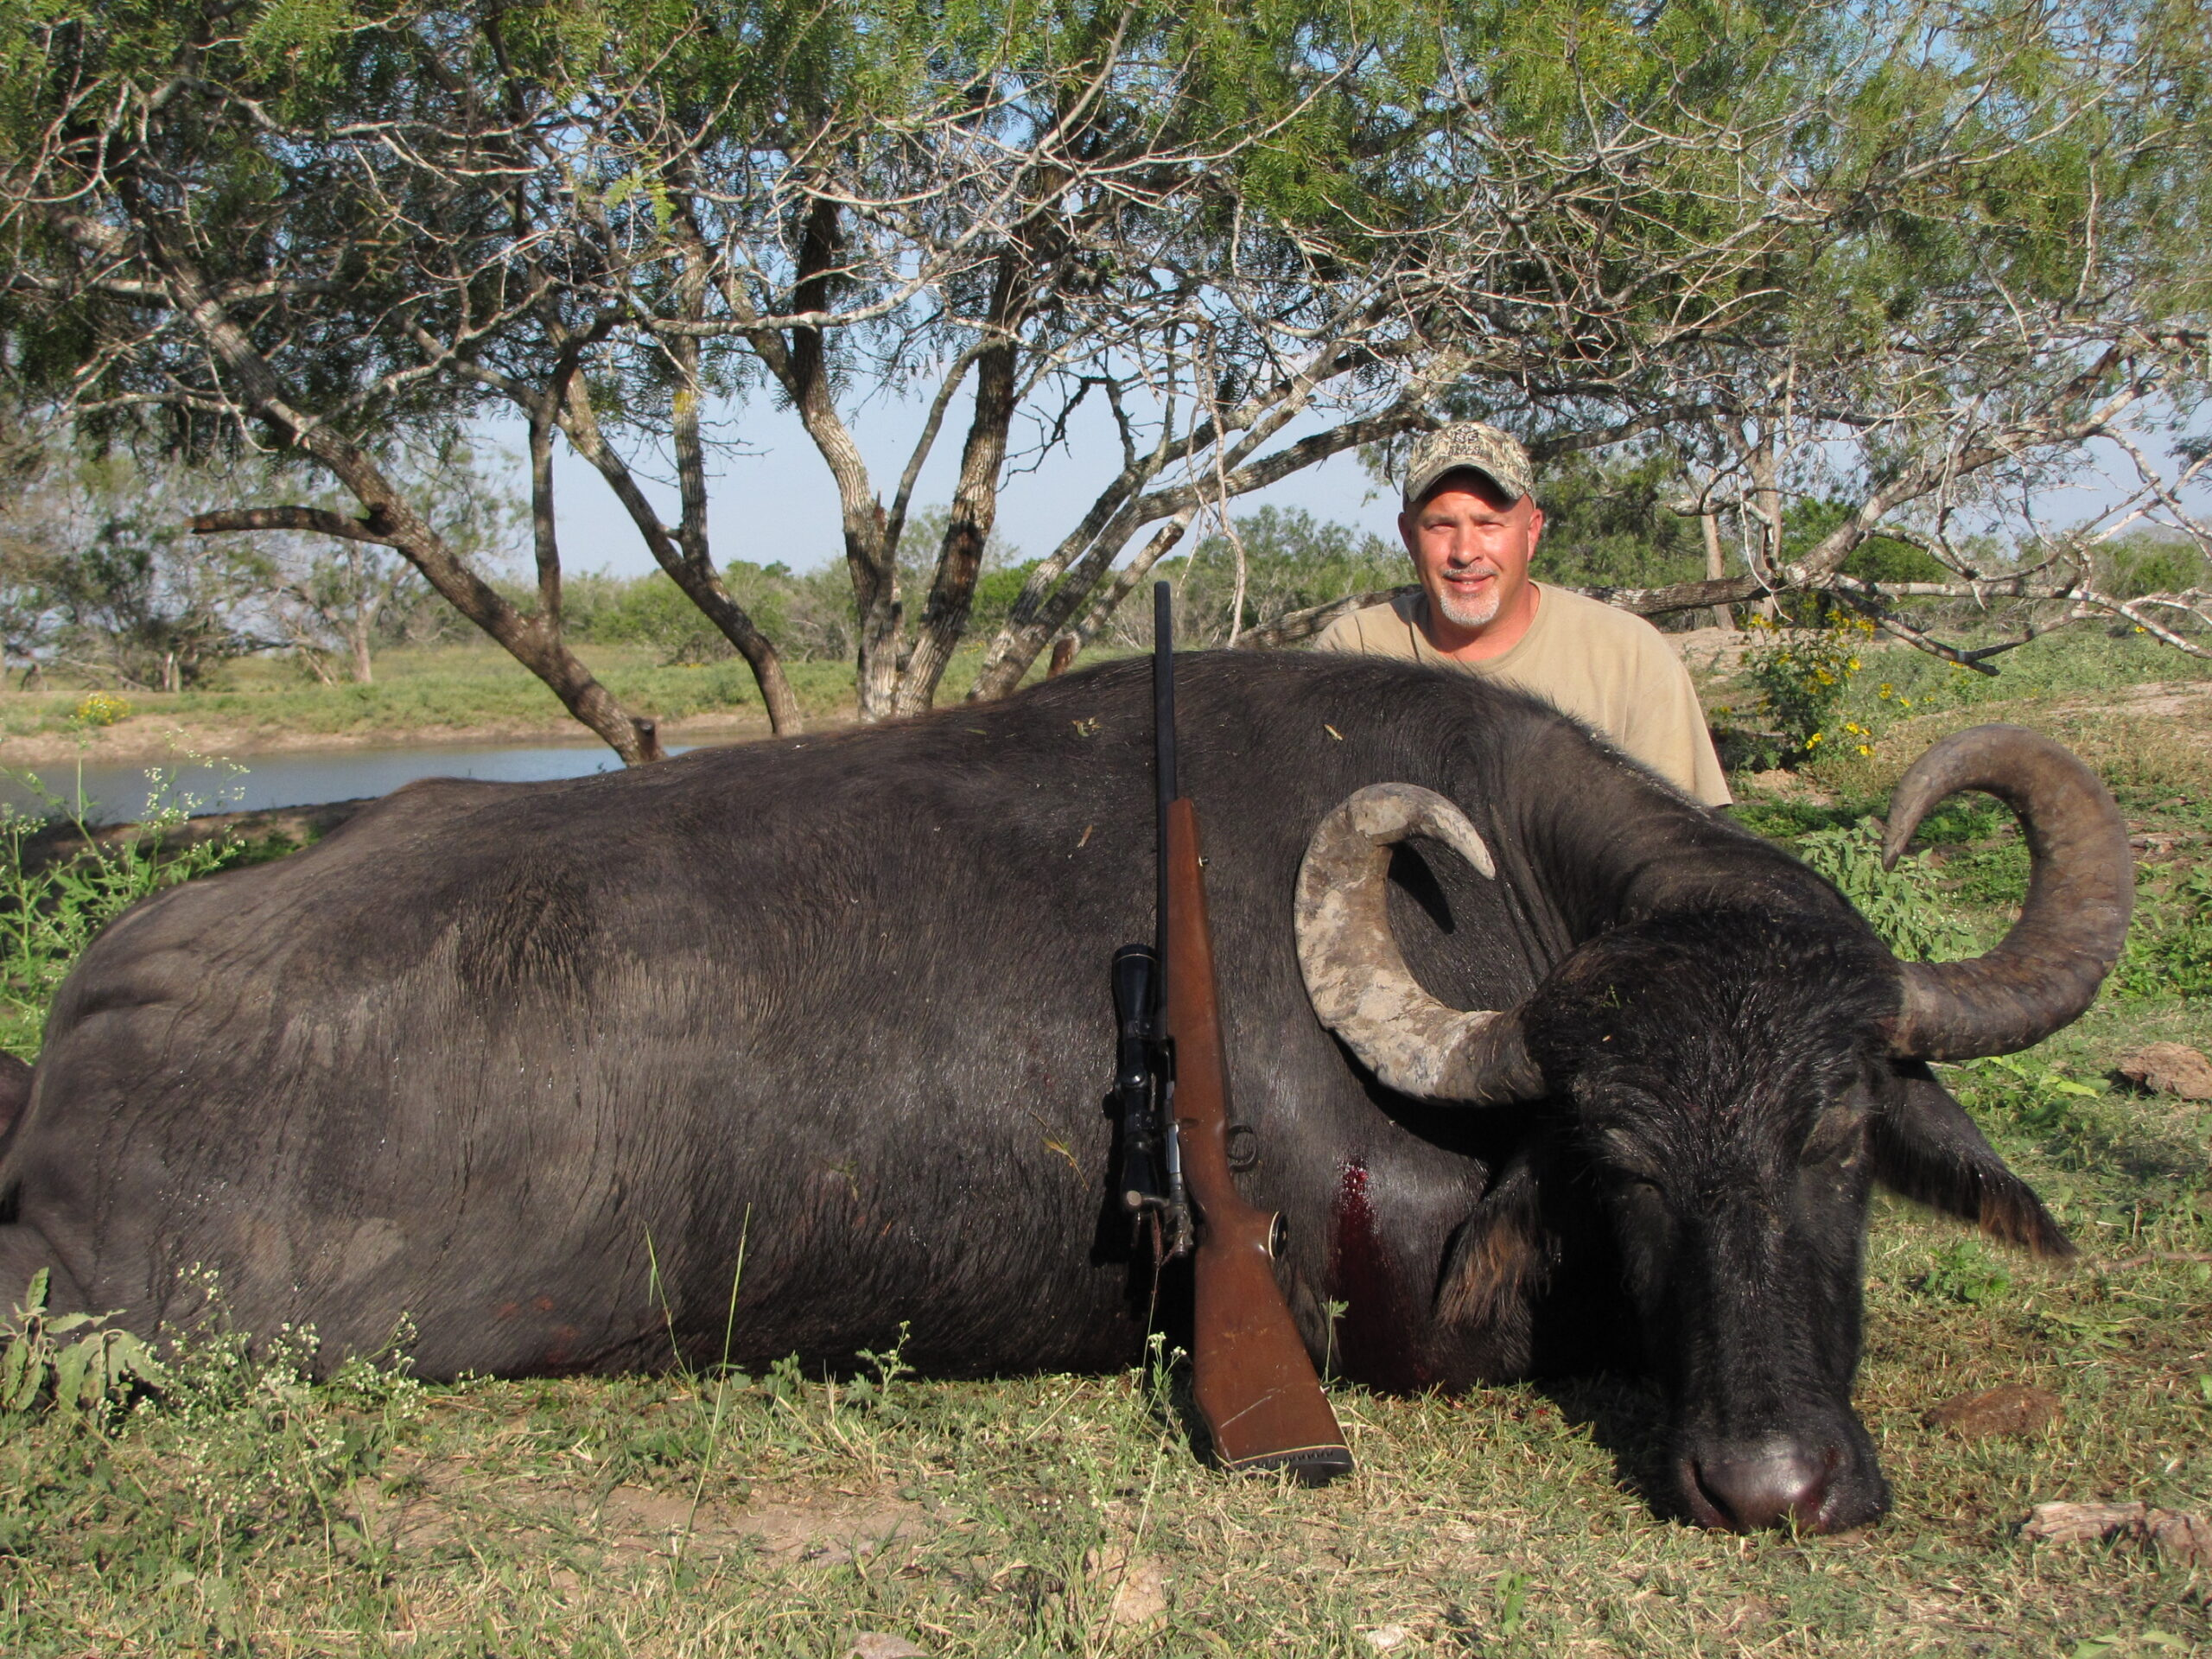 Water Buffalo Hunting in Texas